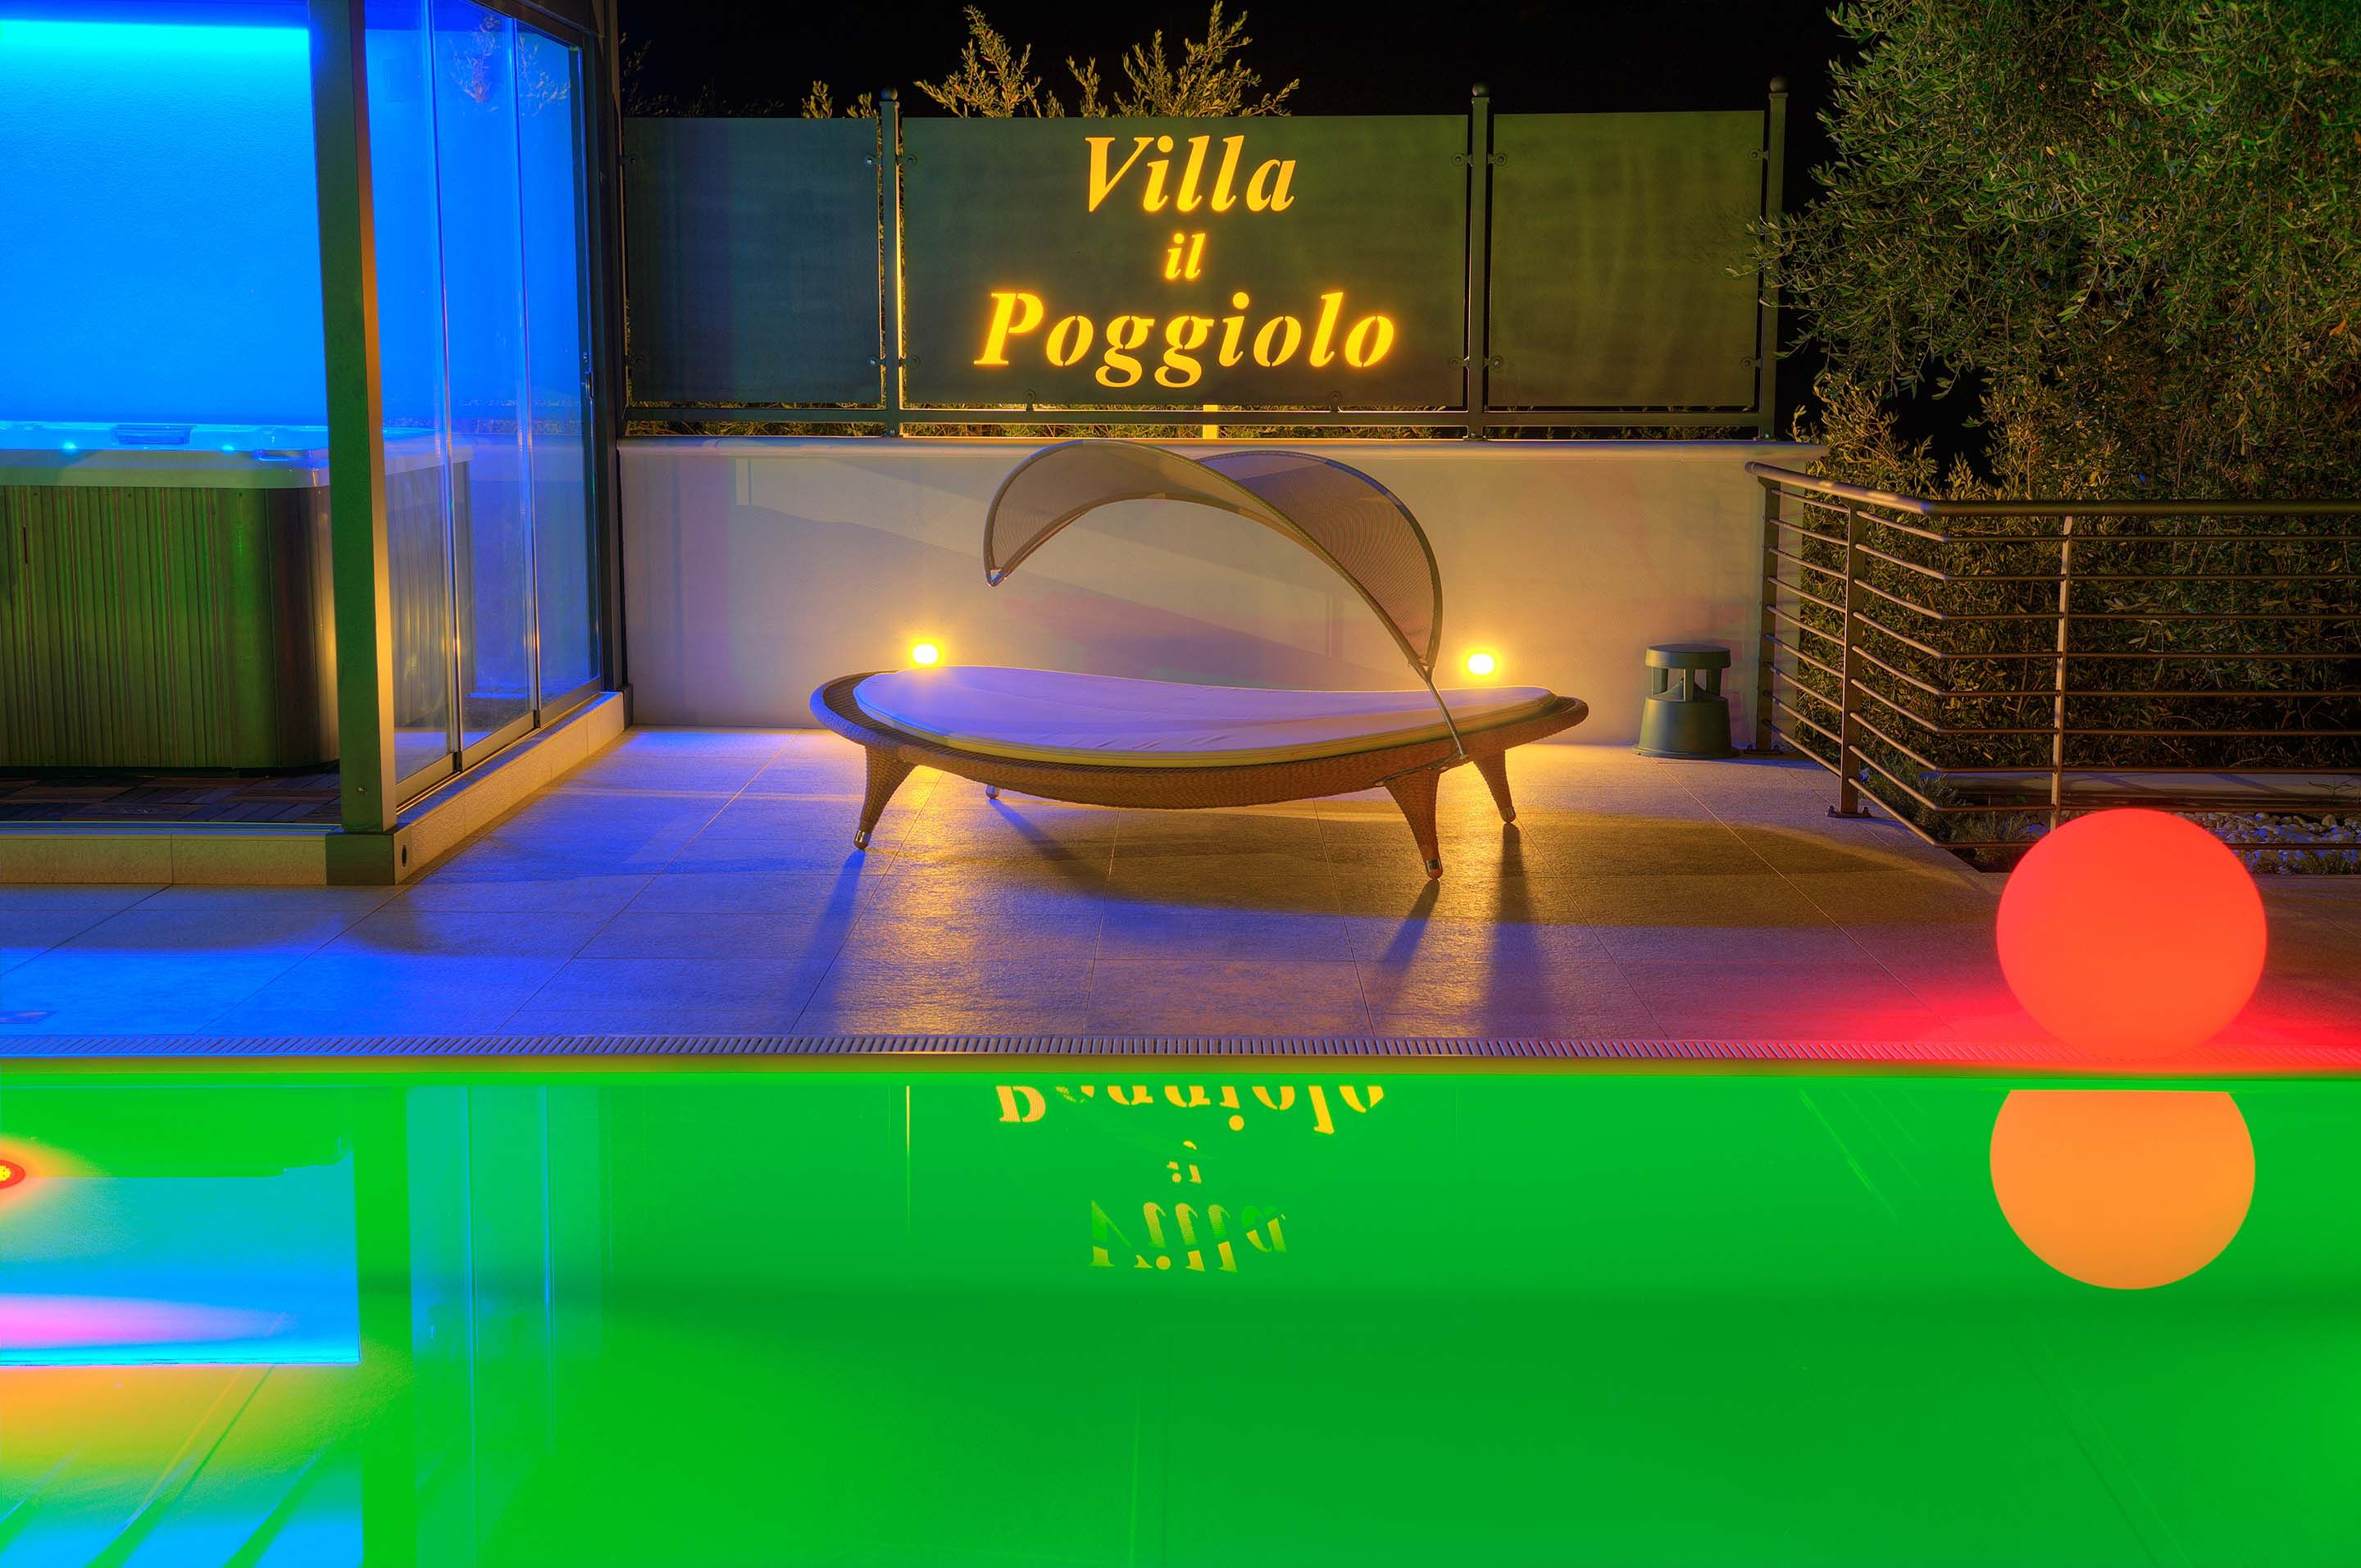 Sample of high impact image - Photo by Mauro Bricca - www.villailpoggiolo.it